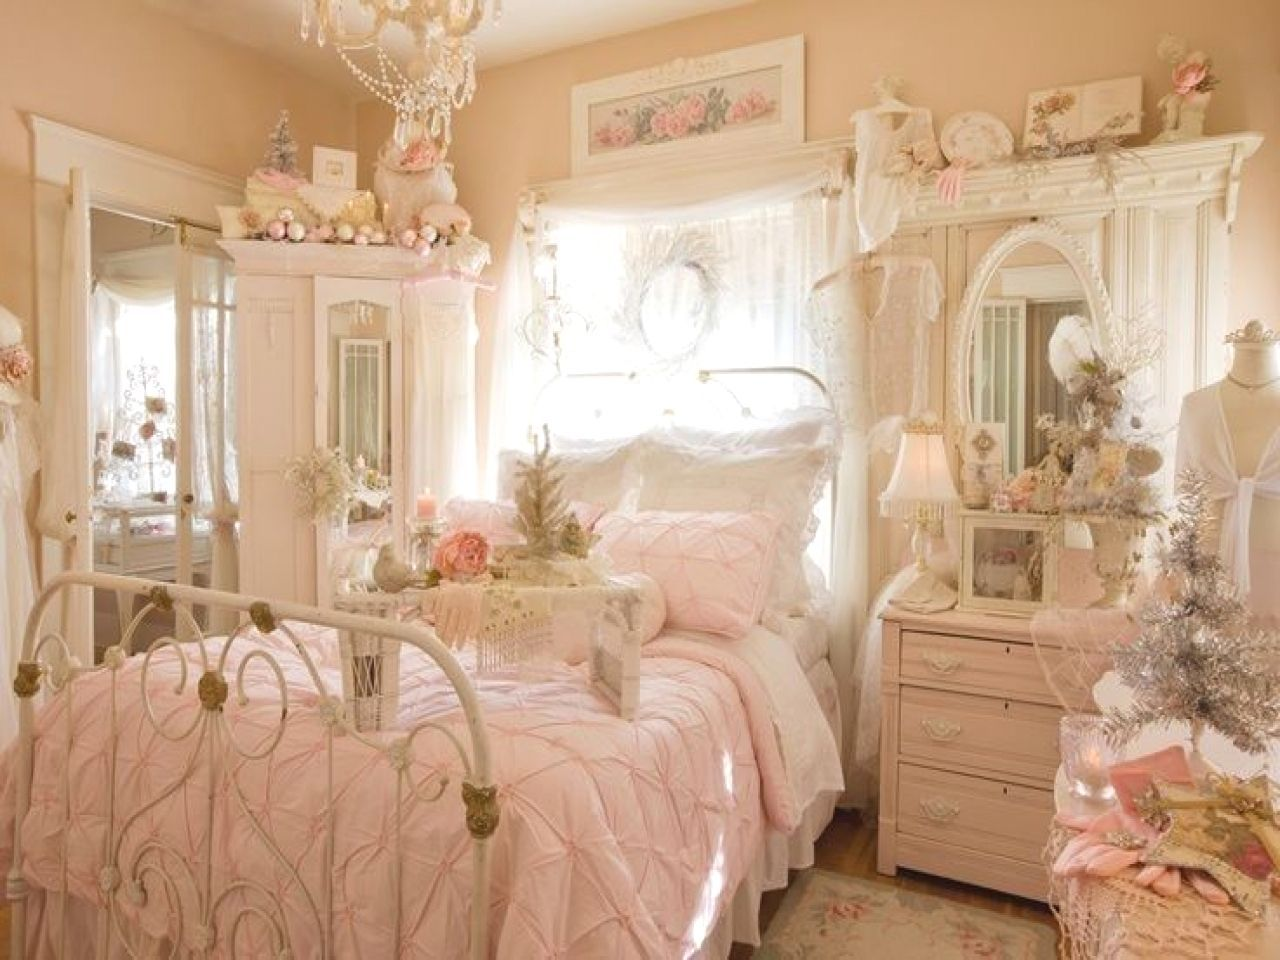 12 Easy Shabby Chic Bedroom Decor Plans You Can Do Yourself For